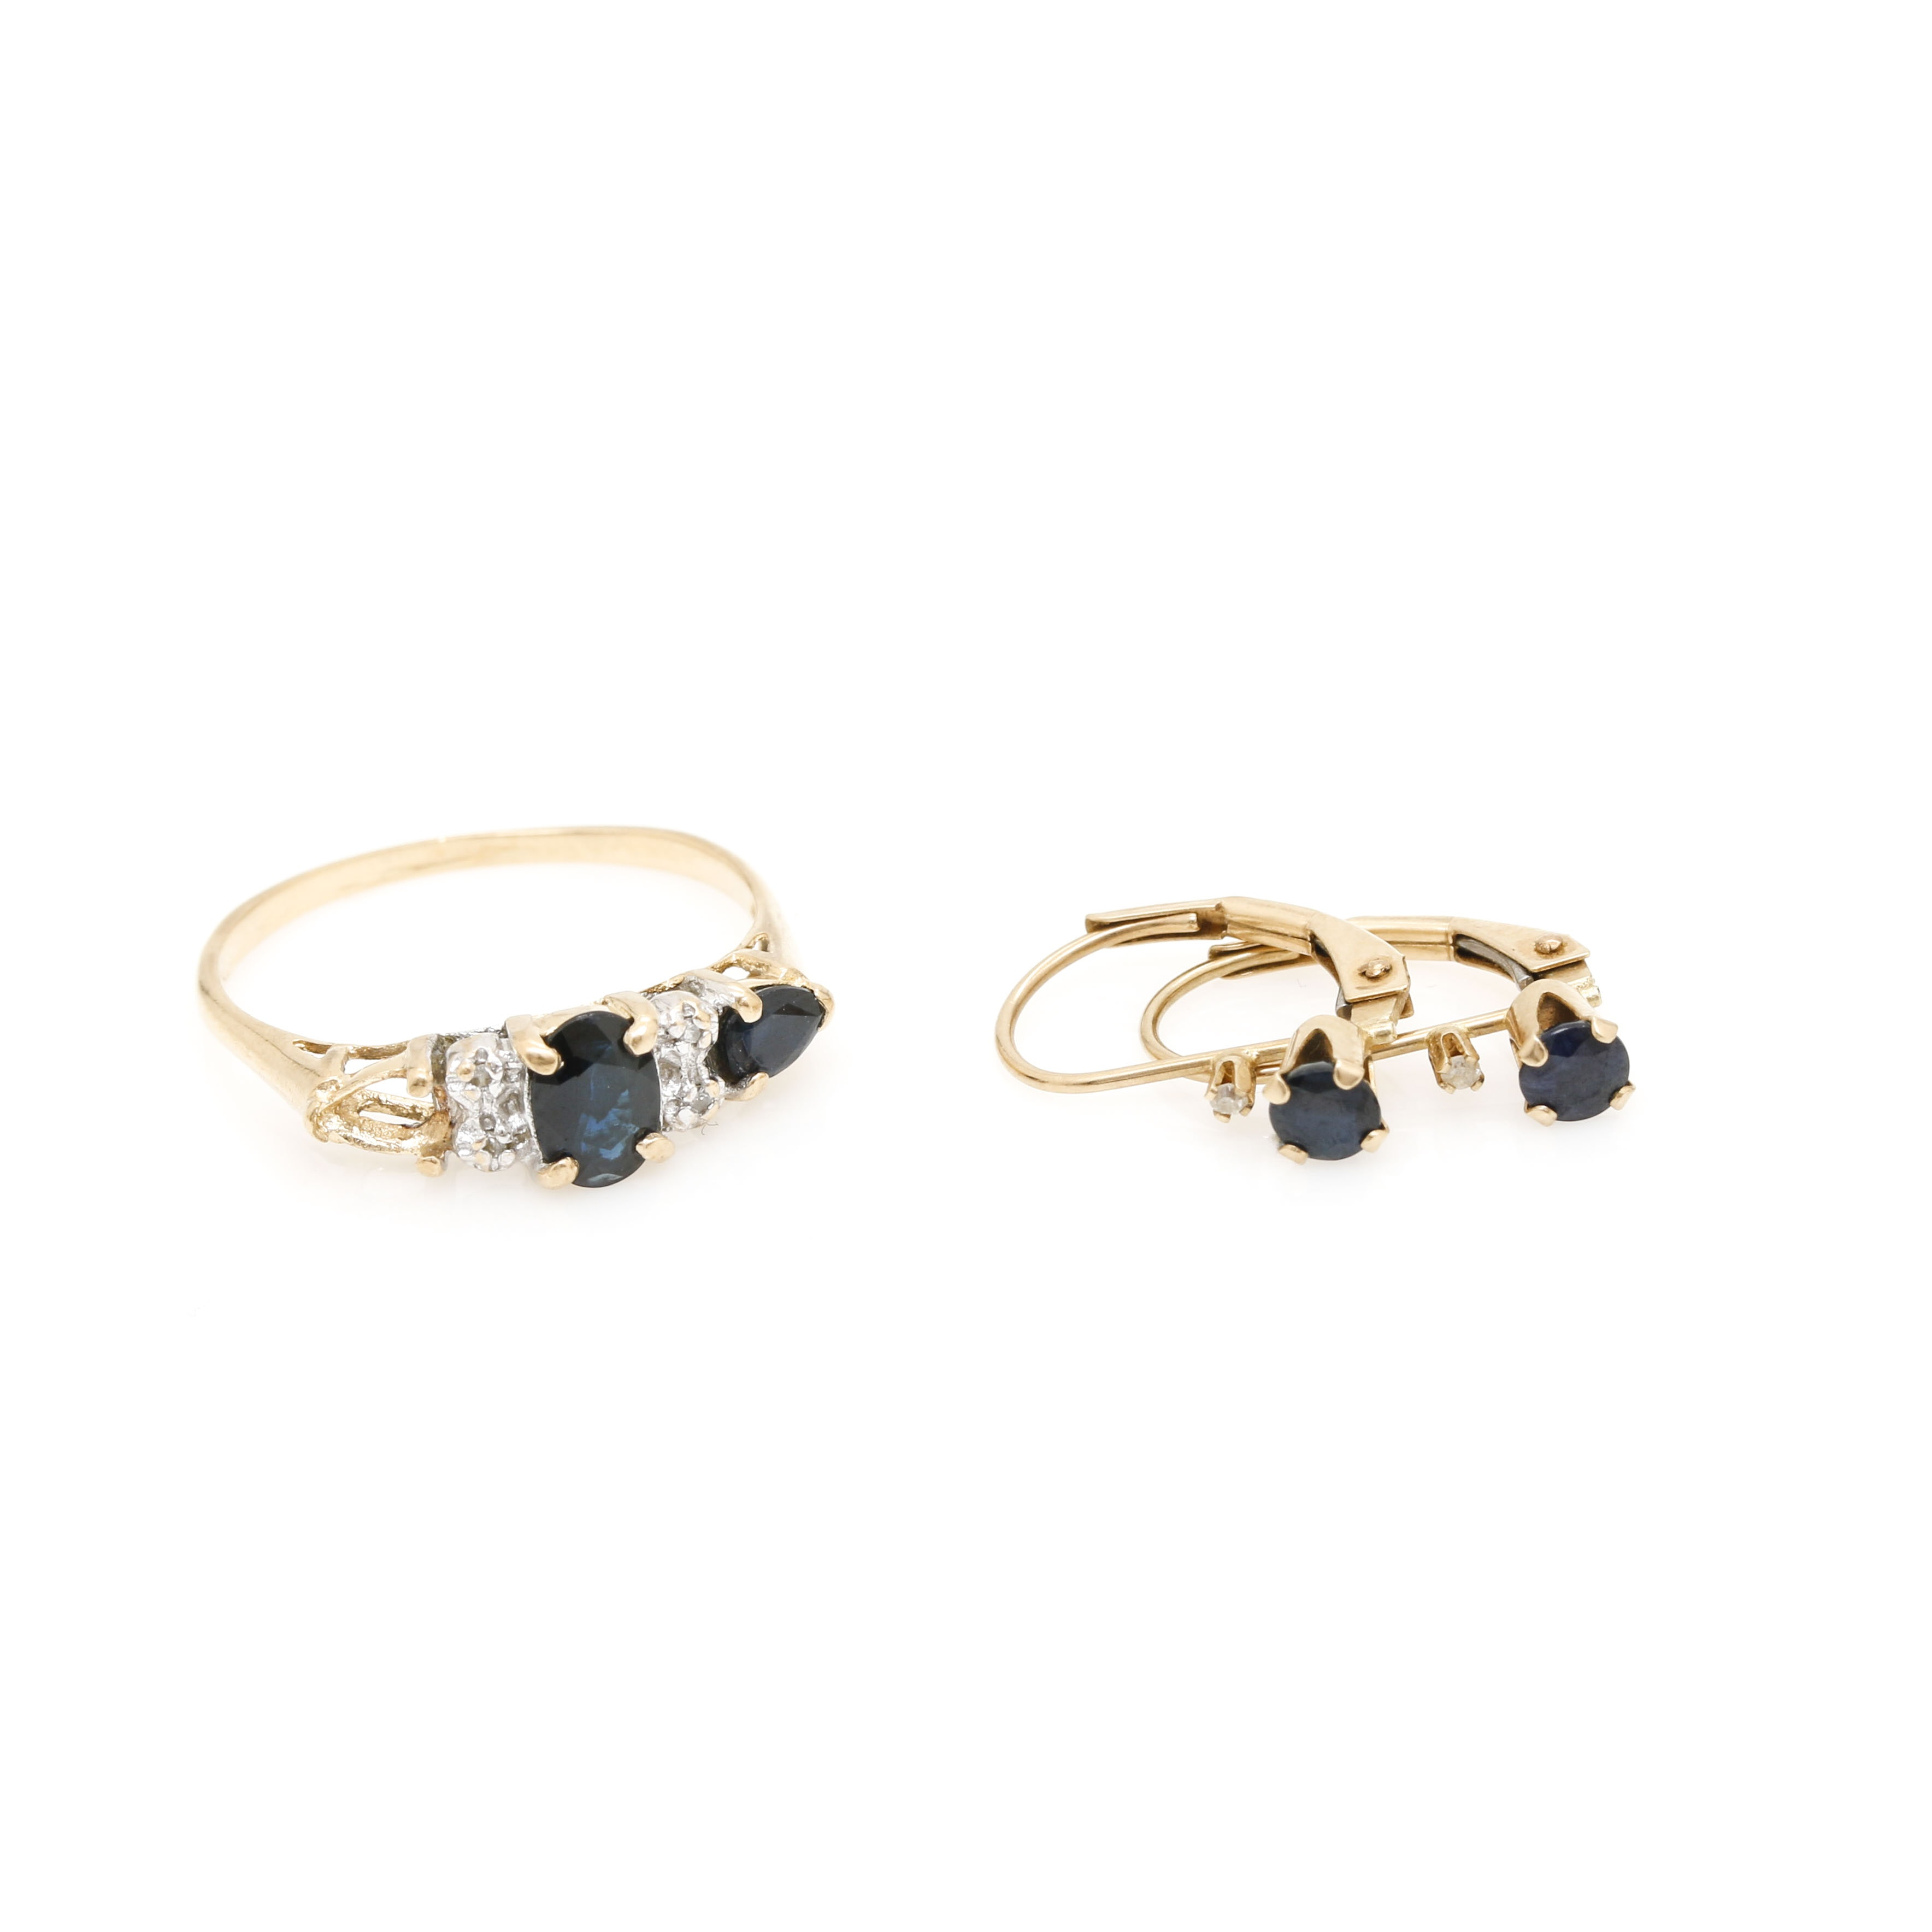 10K Yellow Gold Sapphire and Diamond Earrings and Ring Selection